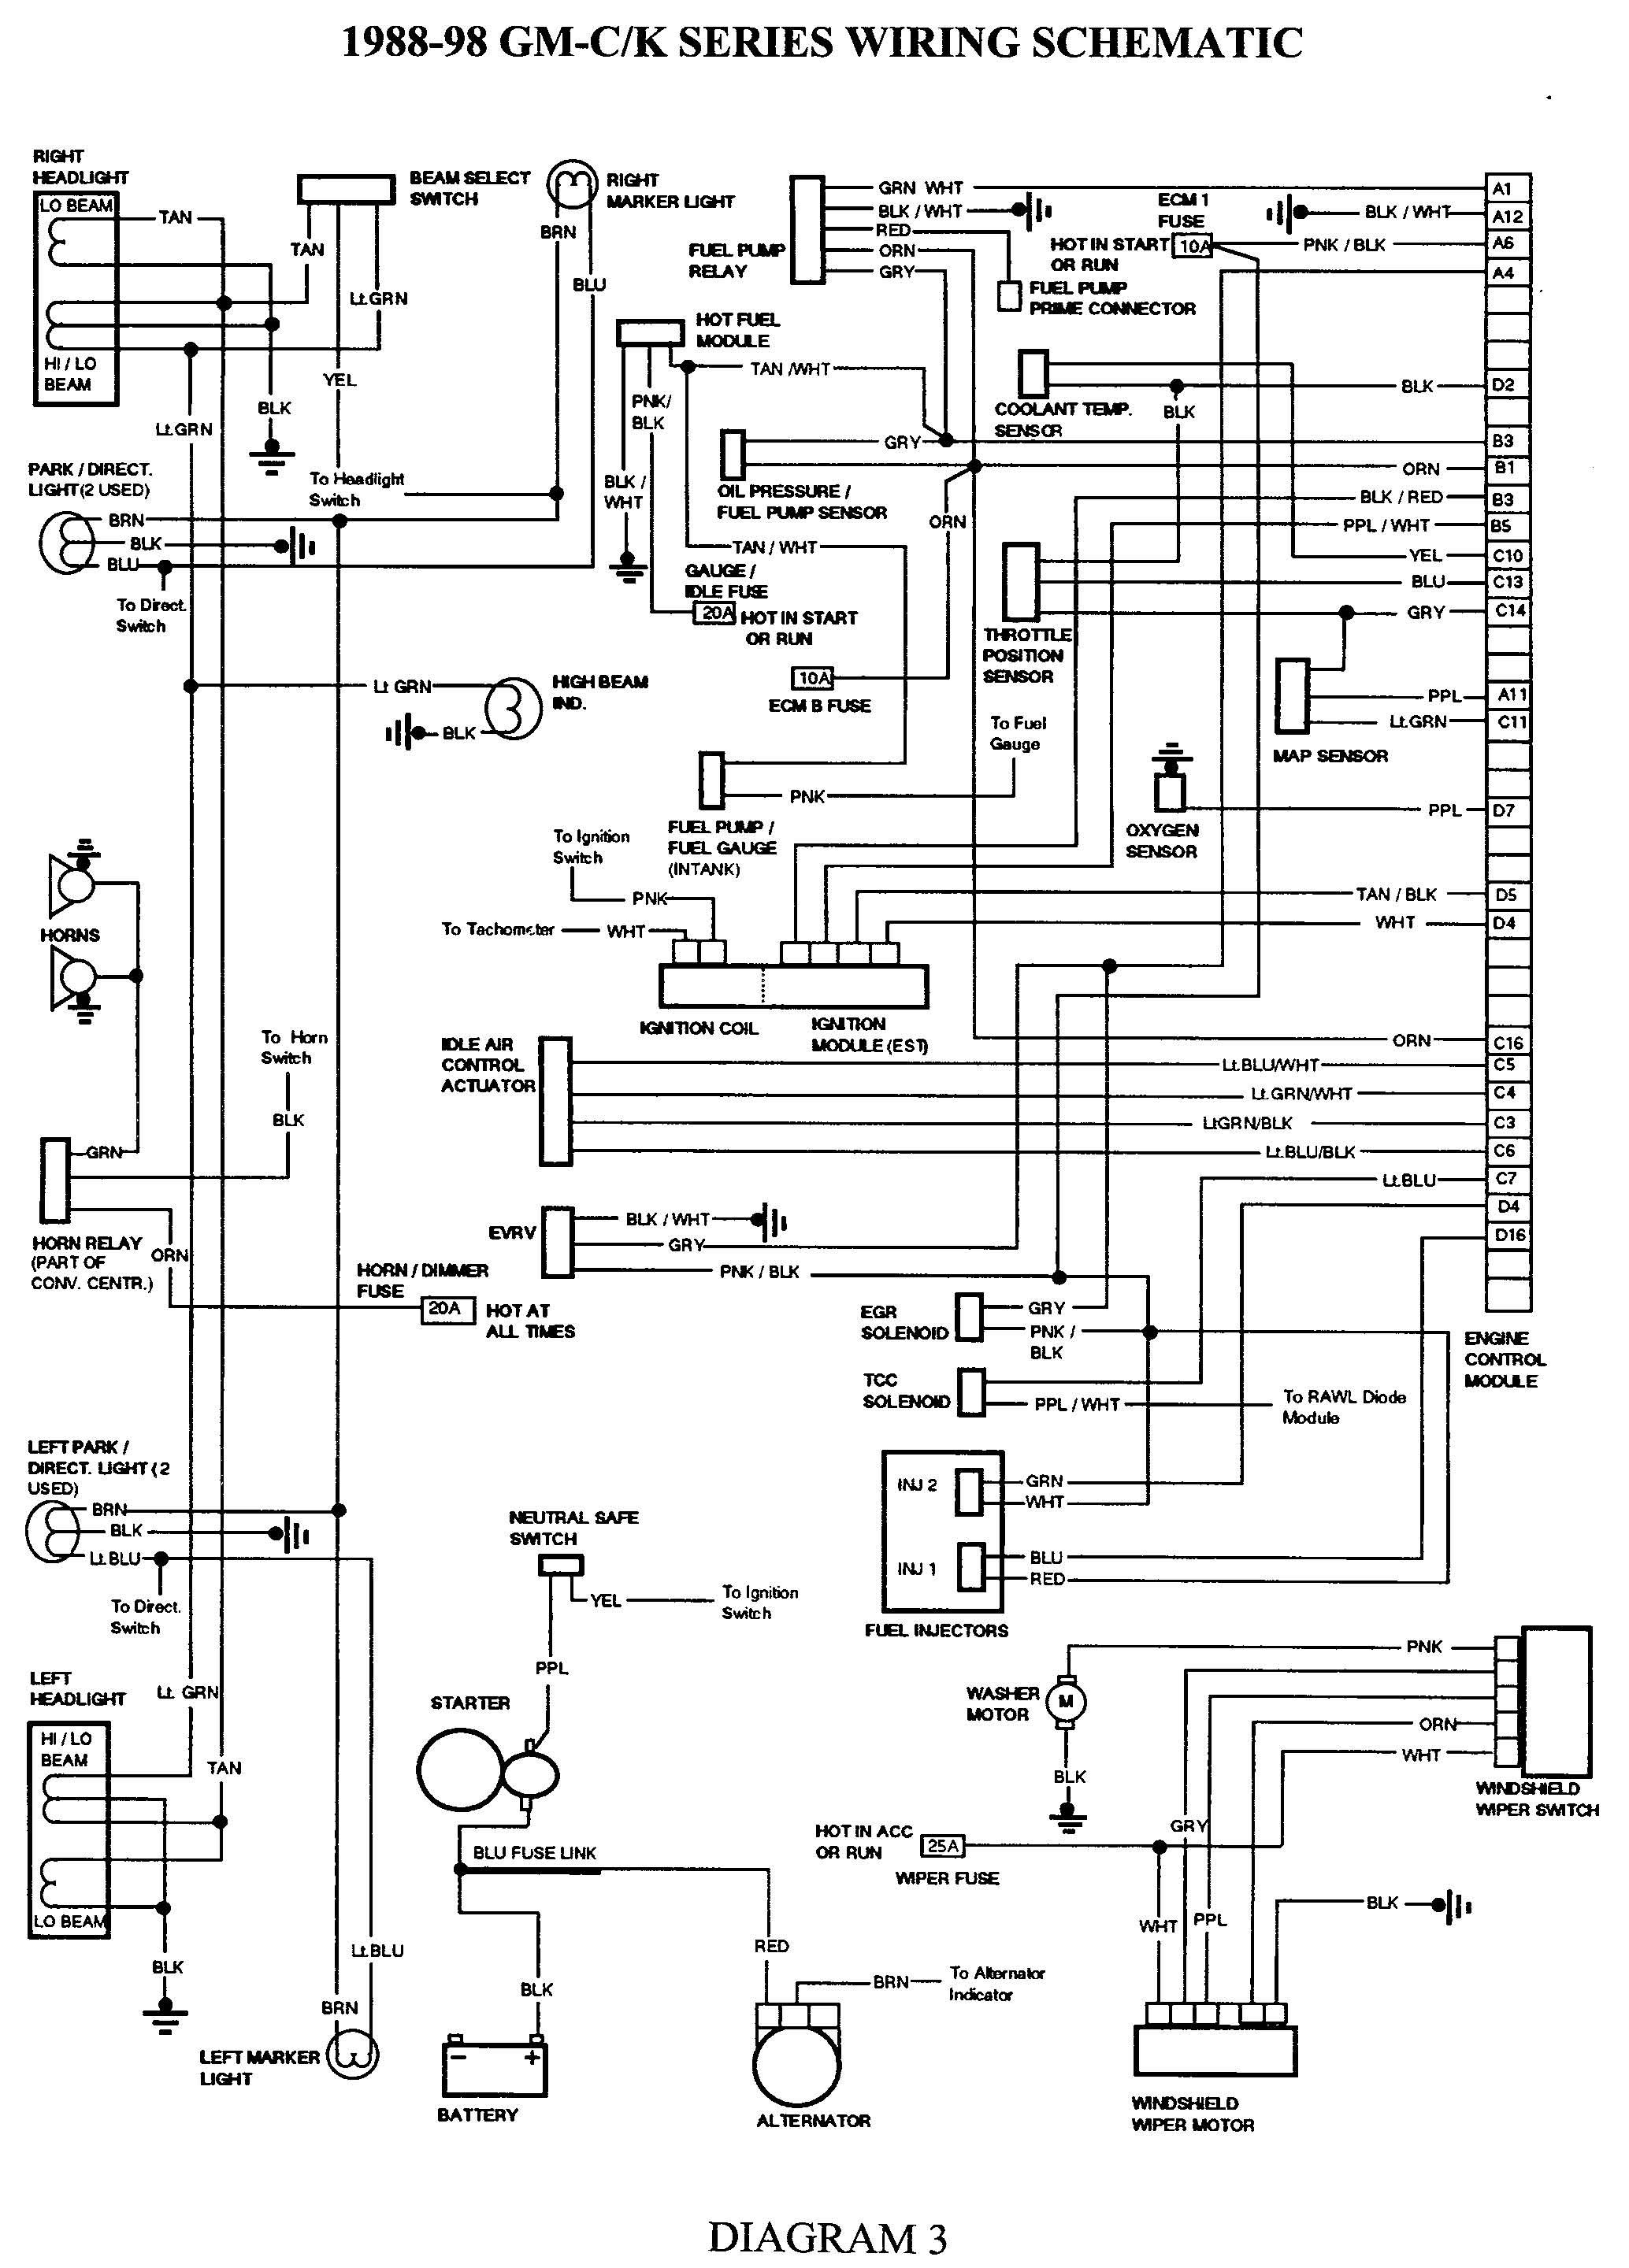 gmc truck wiring diagrams on gm wiring harness diagram 88 98 kc 1984 gmc truck wiring diagram gmc general trucks wiring diagram [ 2068 x 2880 Pixel ]